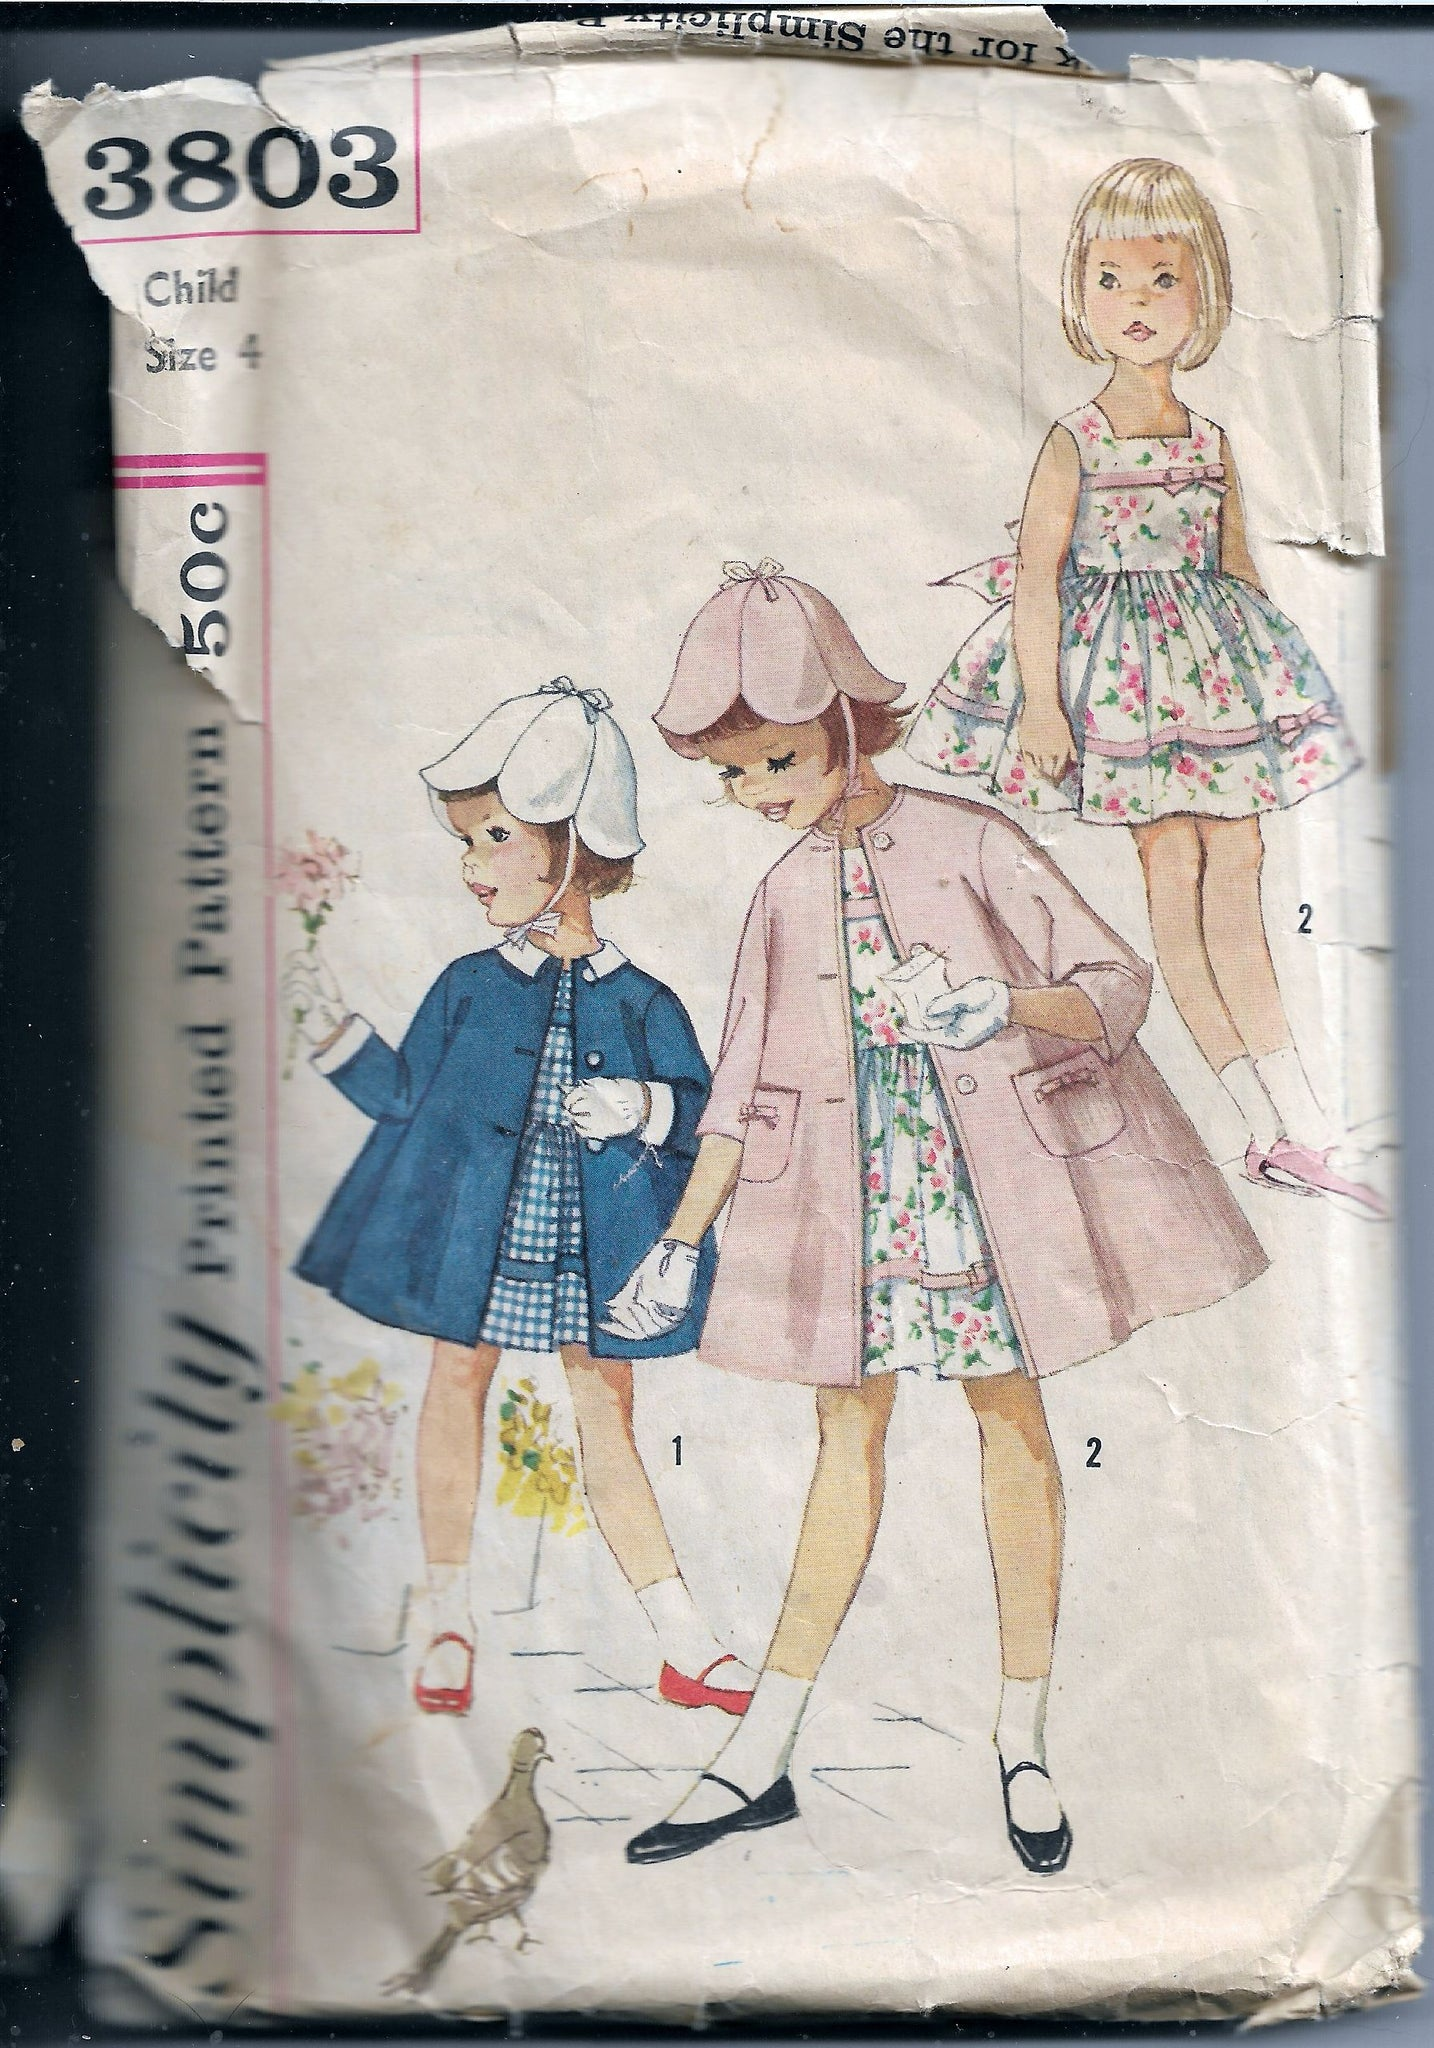 Simplicity 3803 Vintage Sewing Pattern 1960s Little Girls Play Dress Coat - VintageStitching - Vintage Sewing Patterns